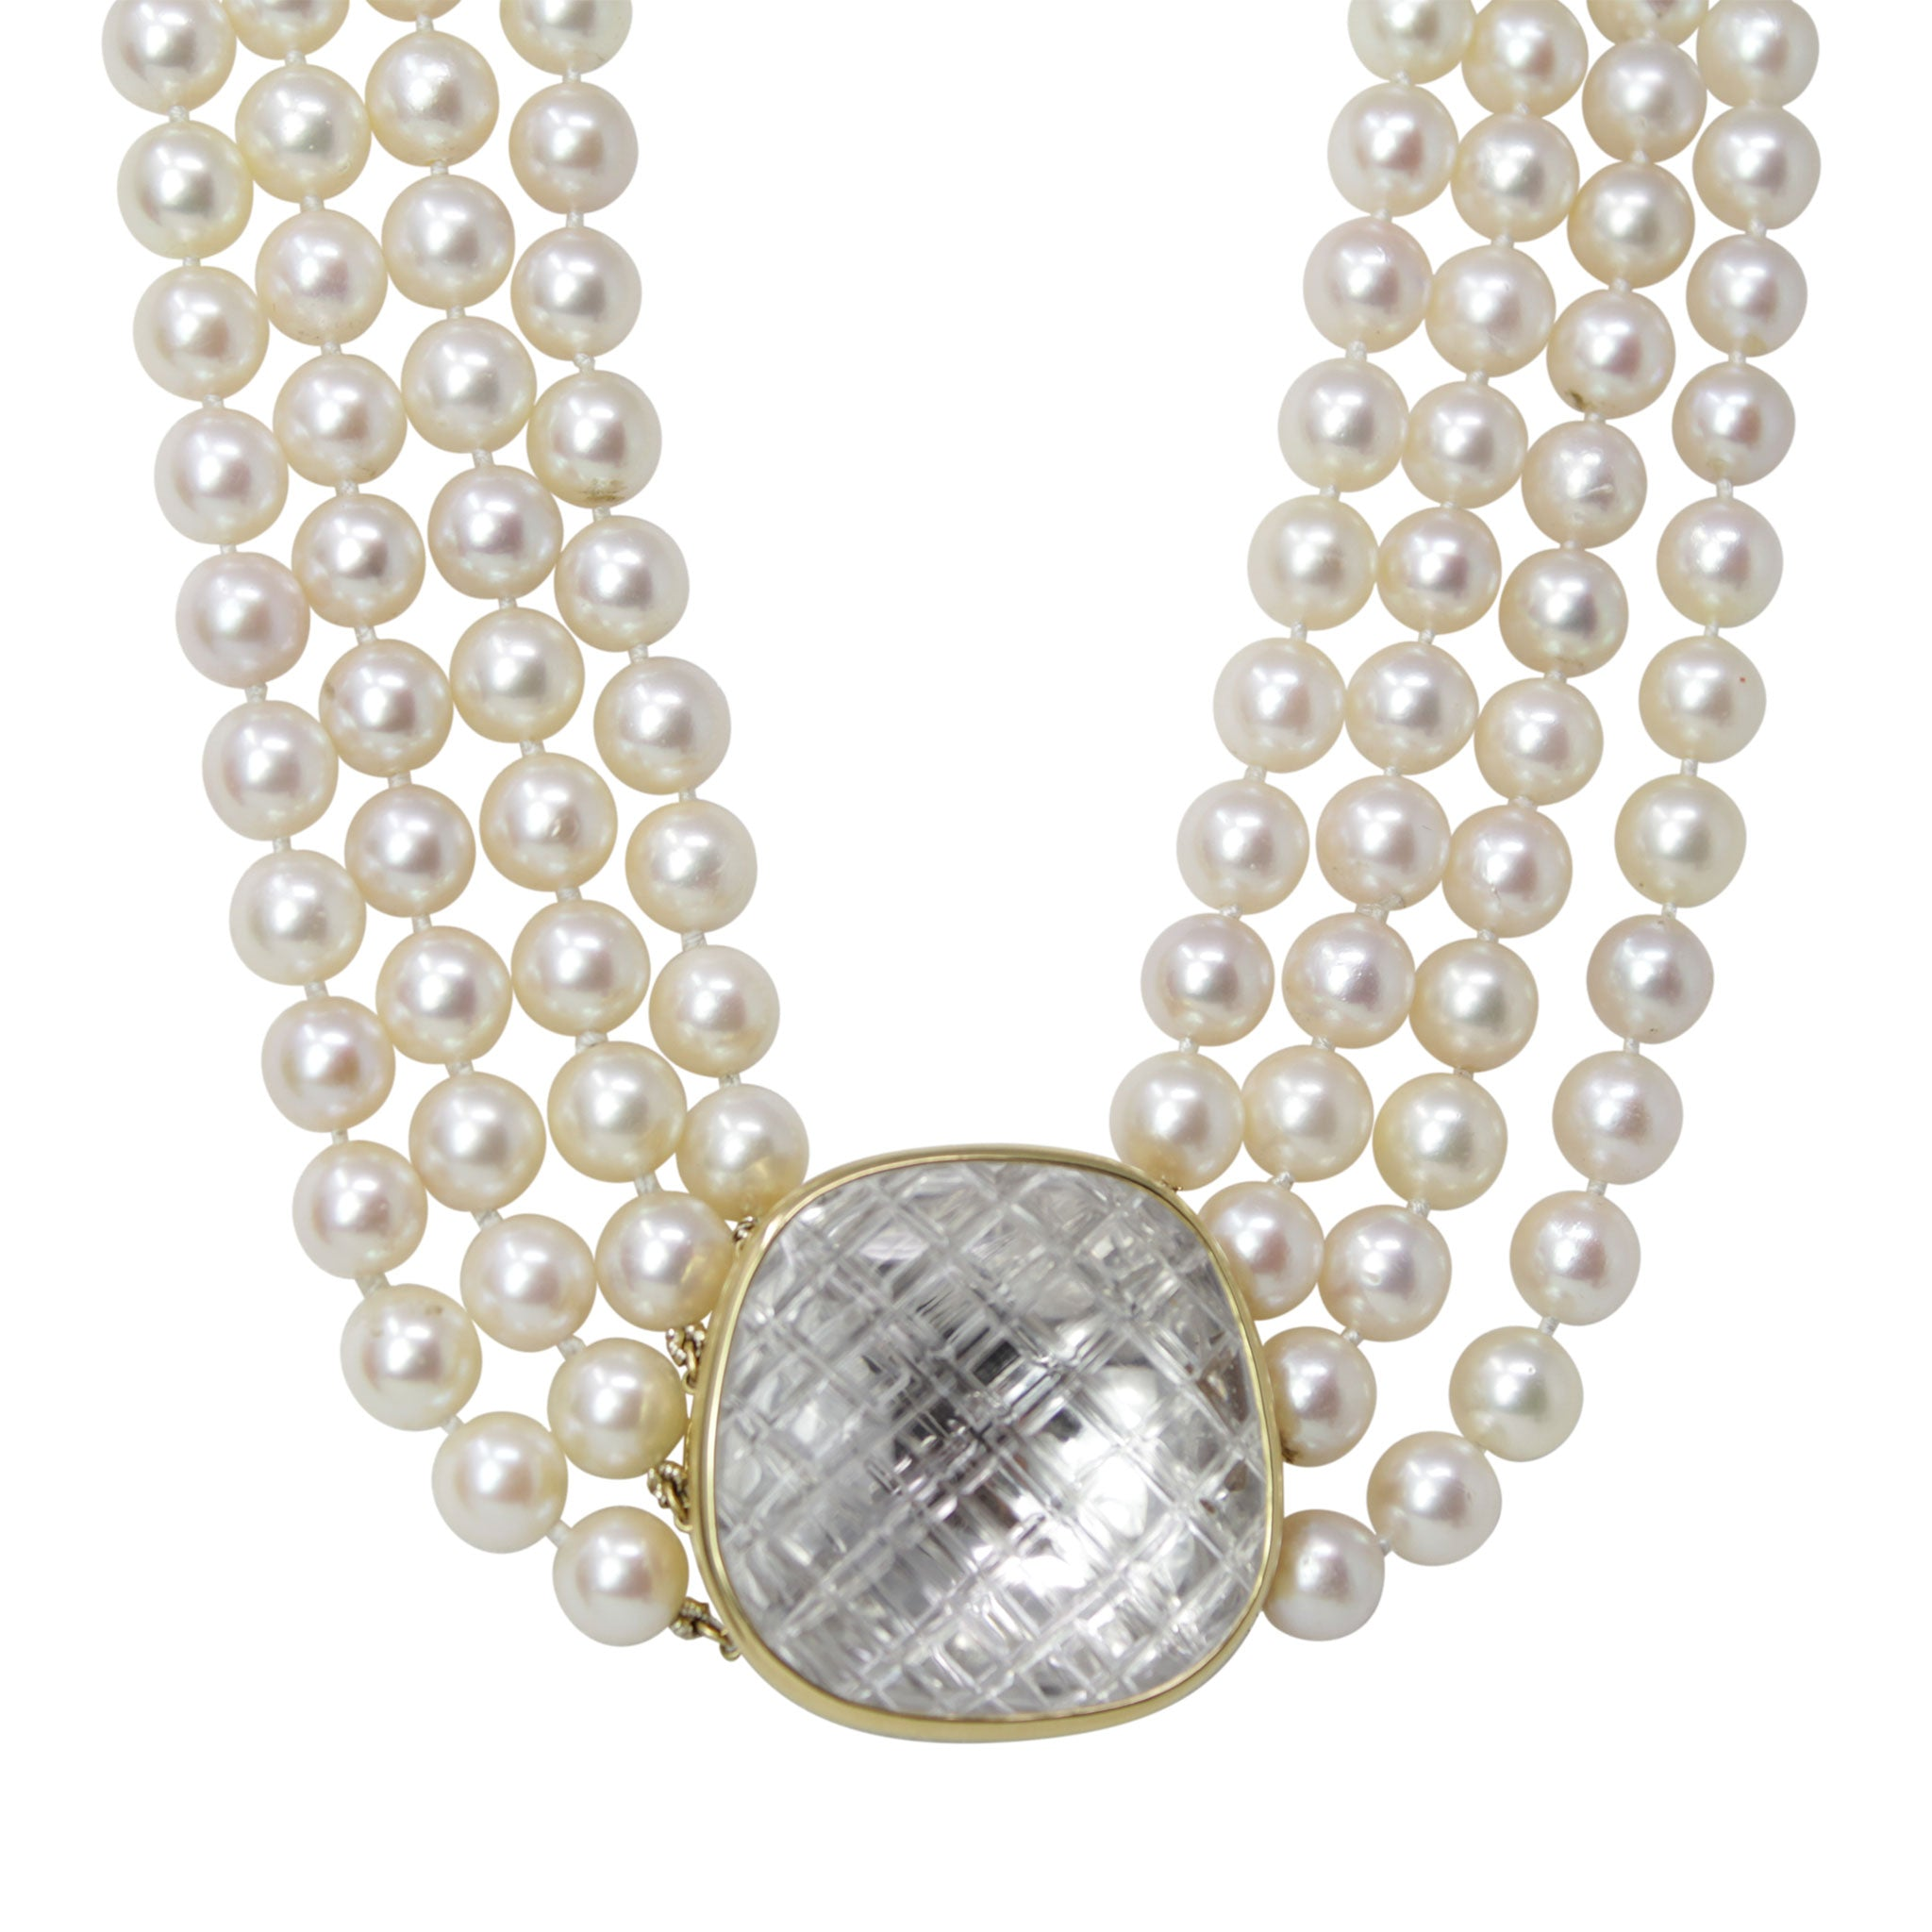 DAVID WEBB 18K Yellow Gold Center Quartz Crystal Pearl Necklace